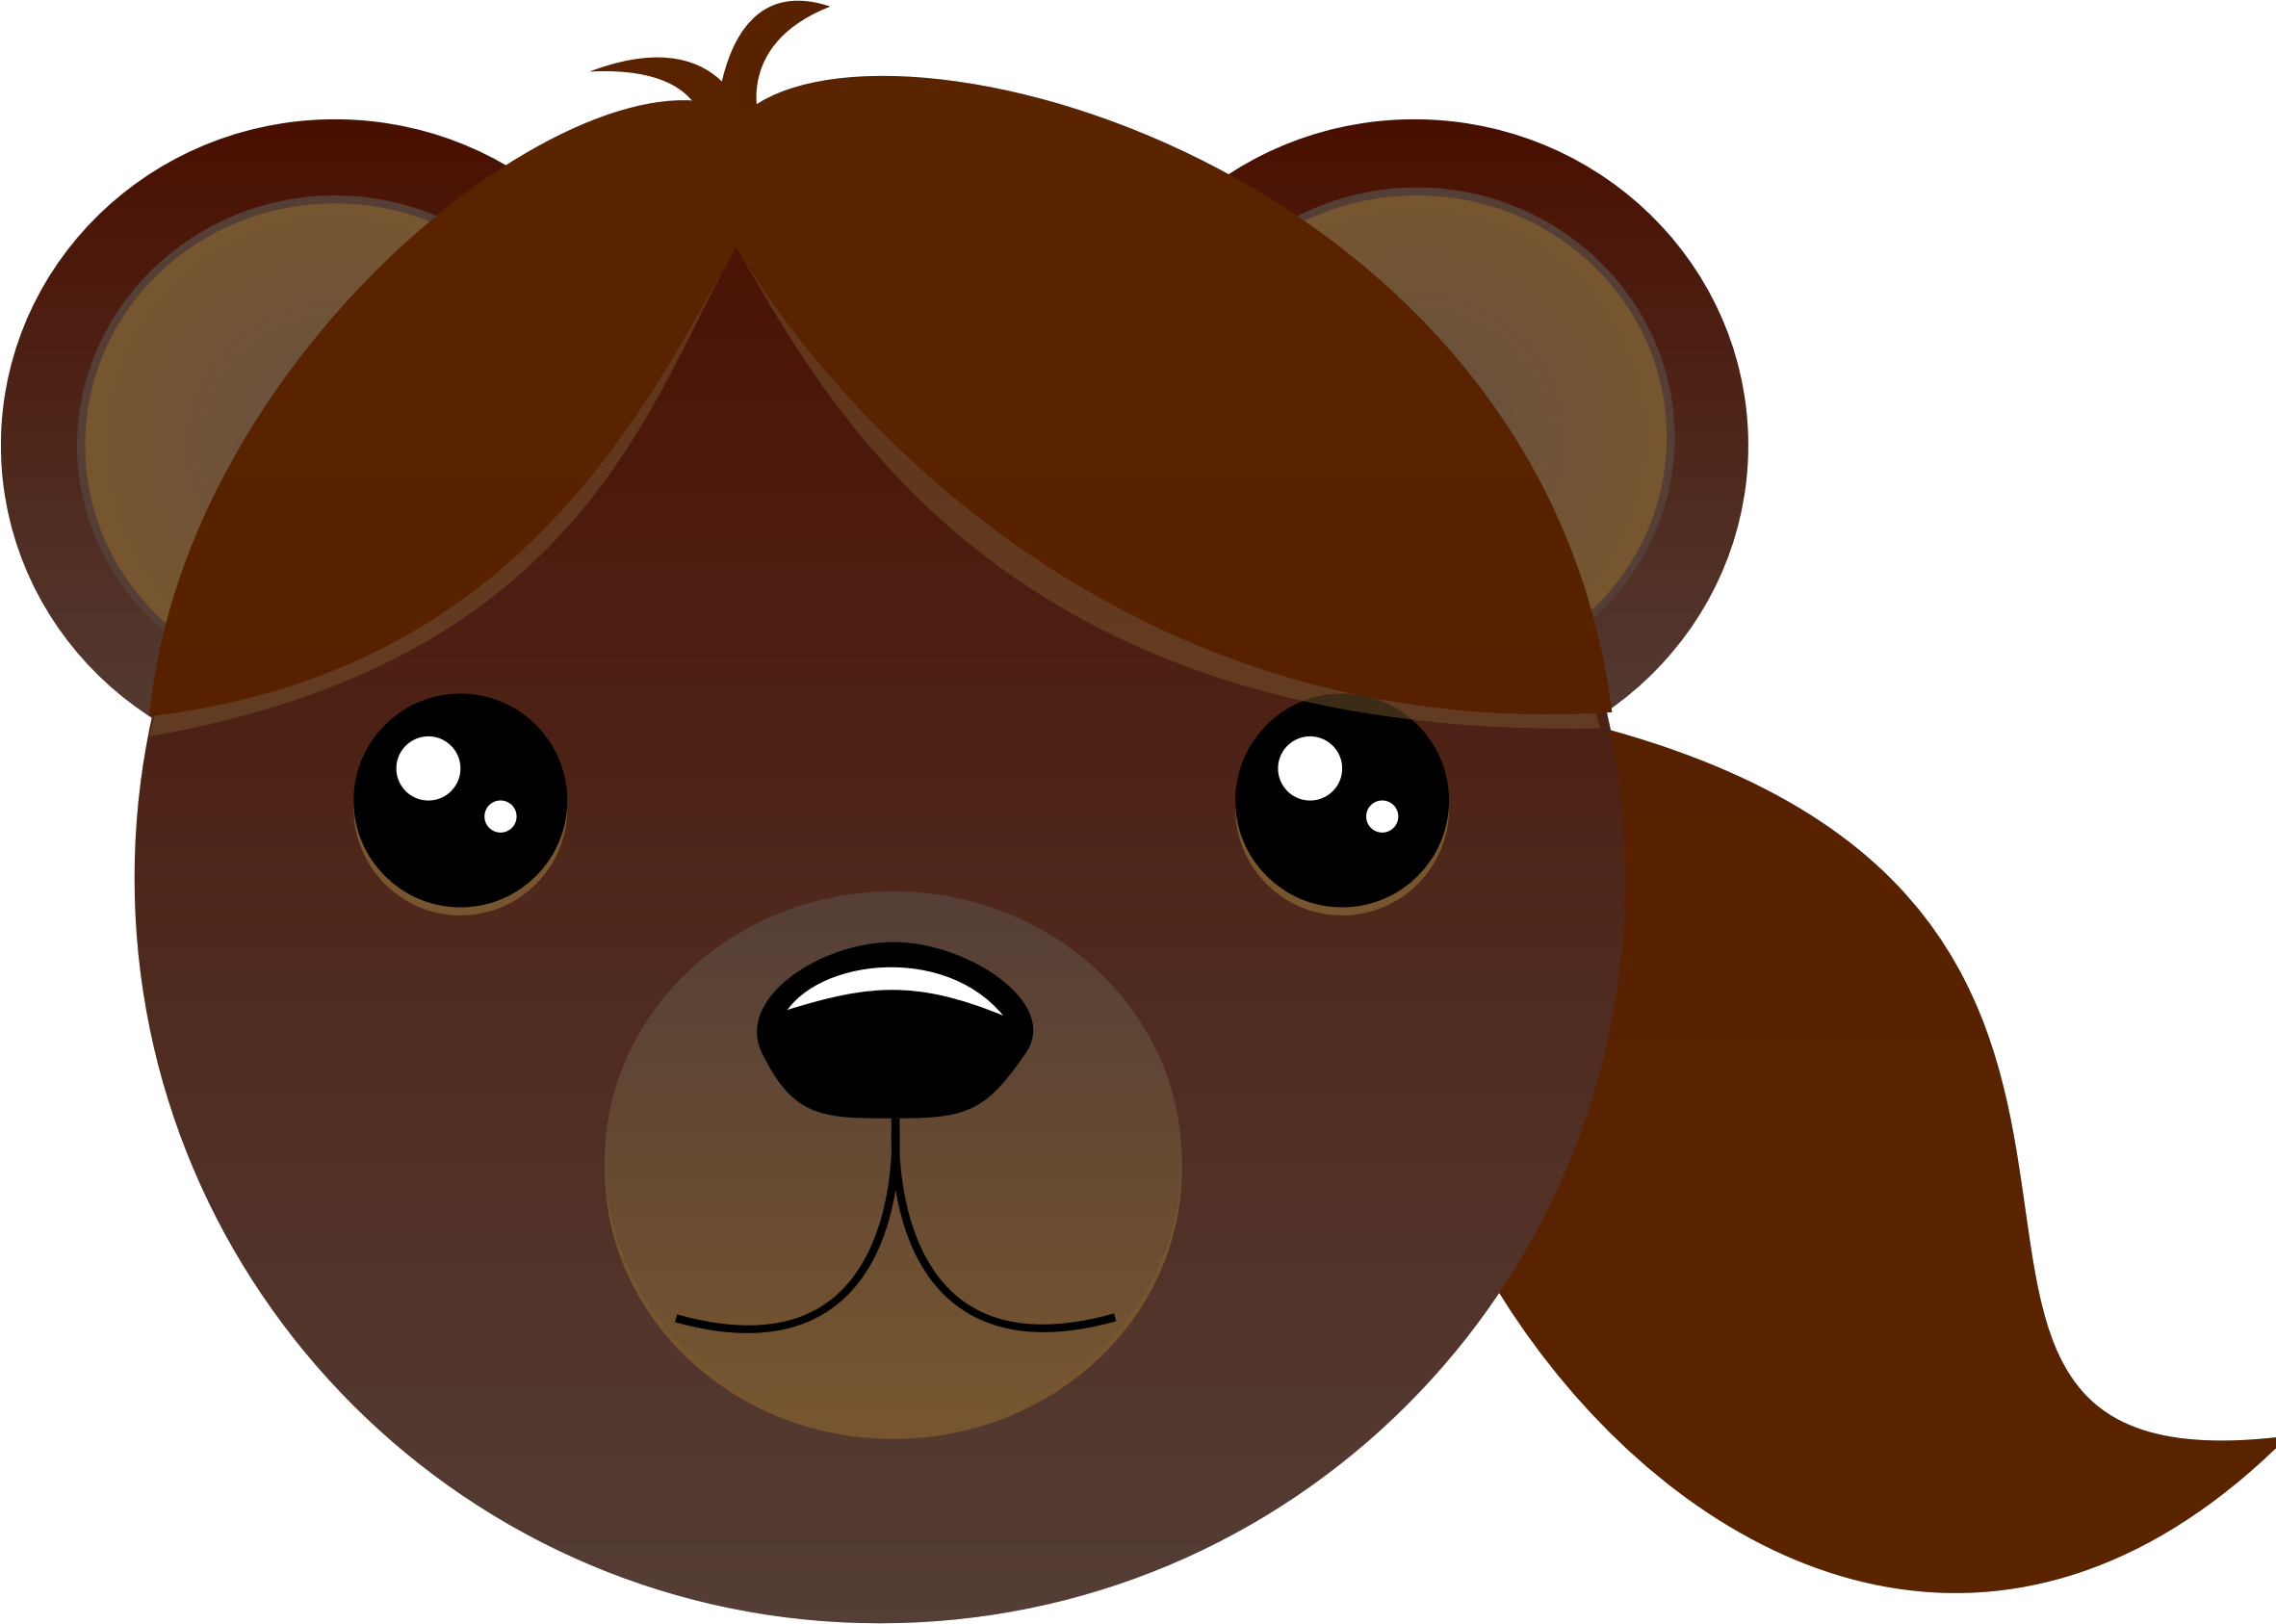 Brown bear with pony tail by intergrapher